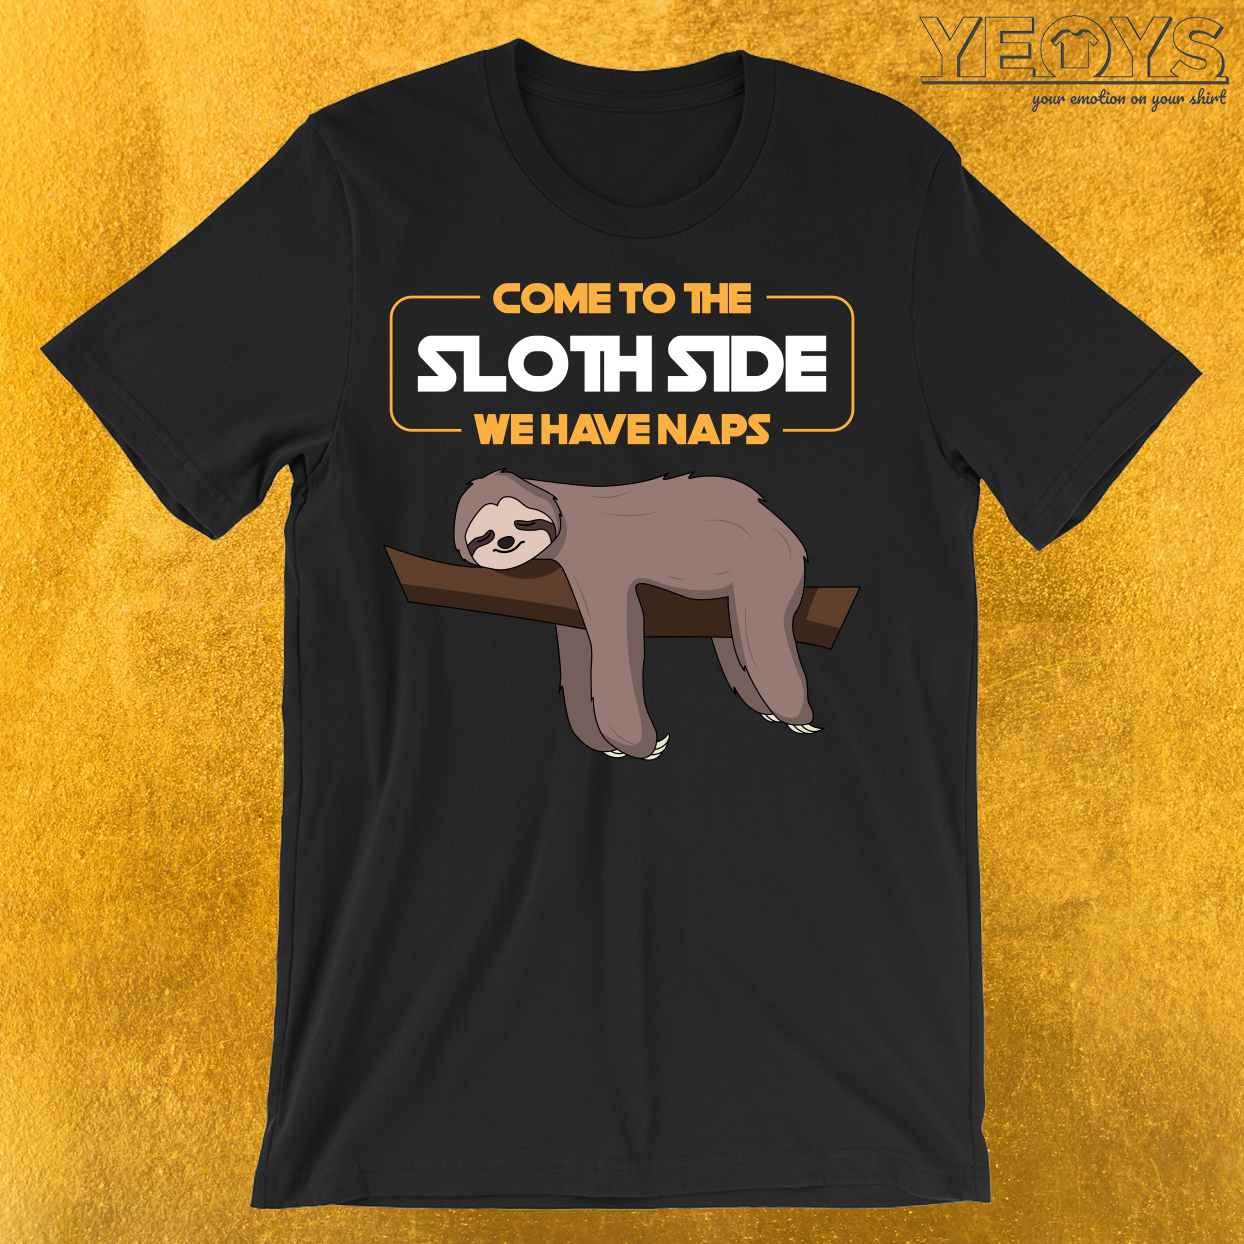 Come To The Sloth Side T-Shirt